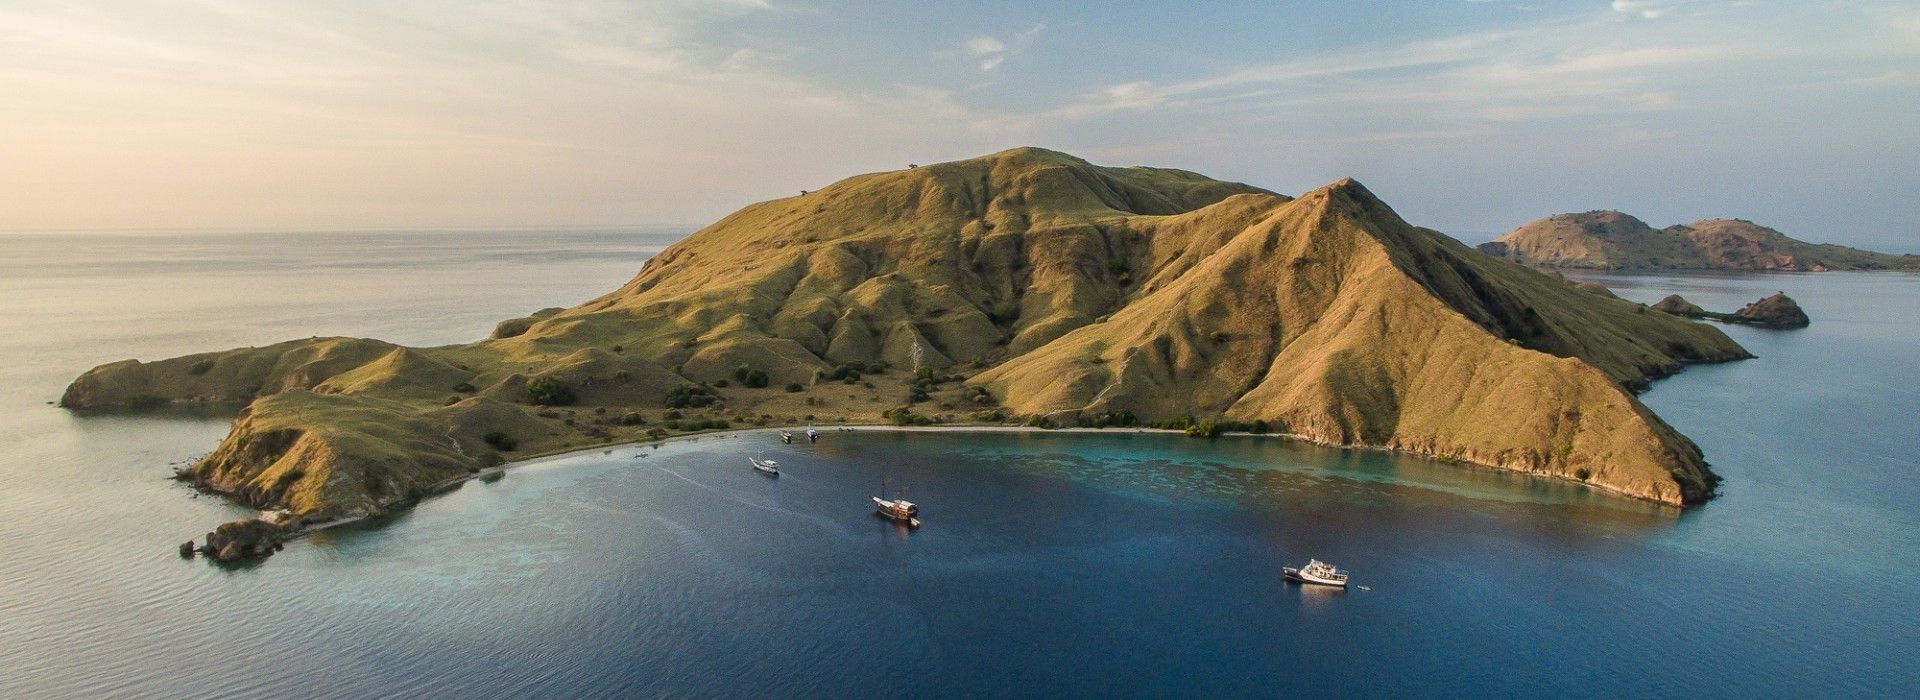 Aerial view of Komodo Islands